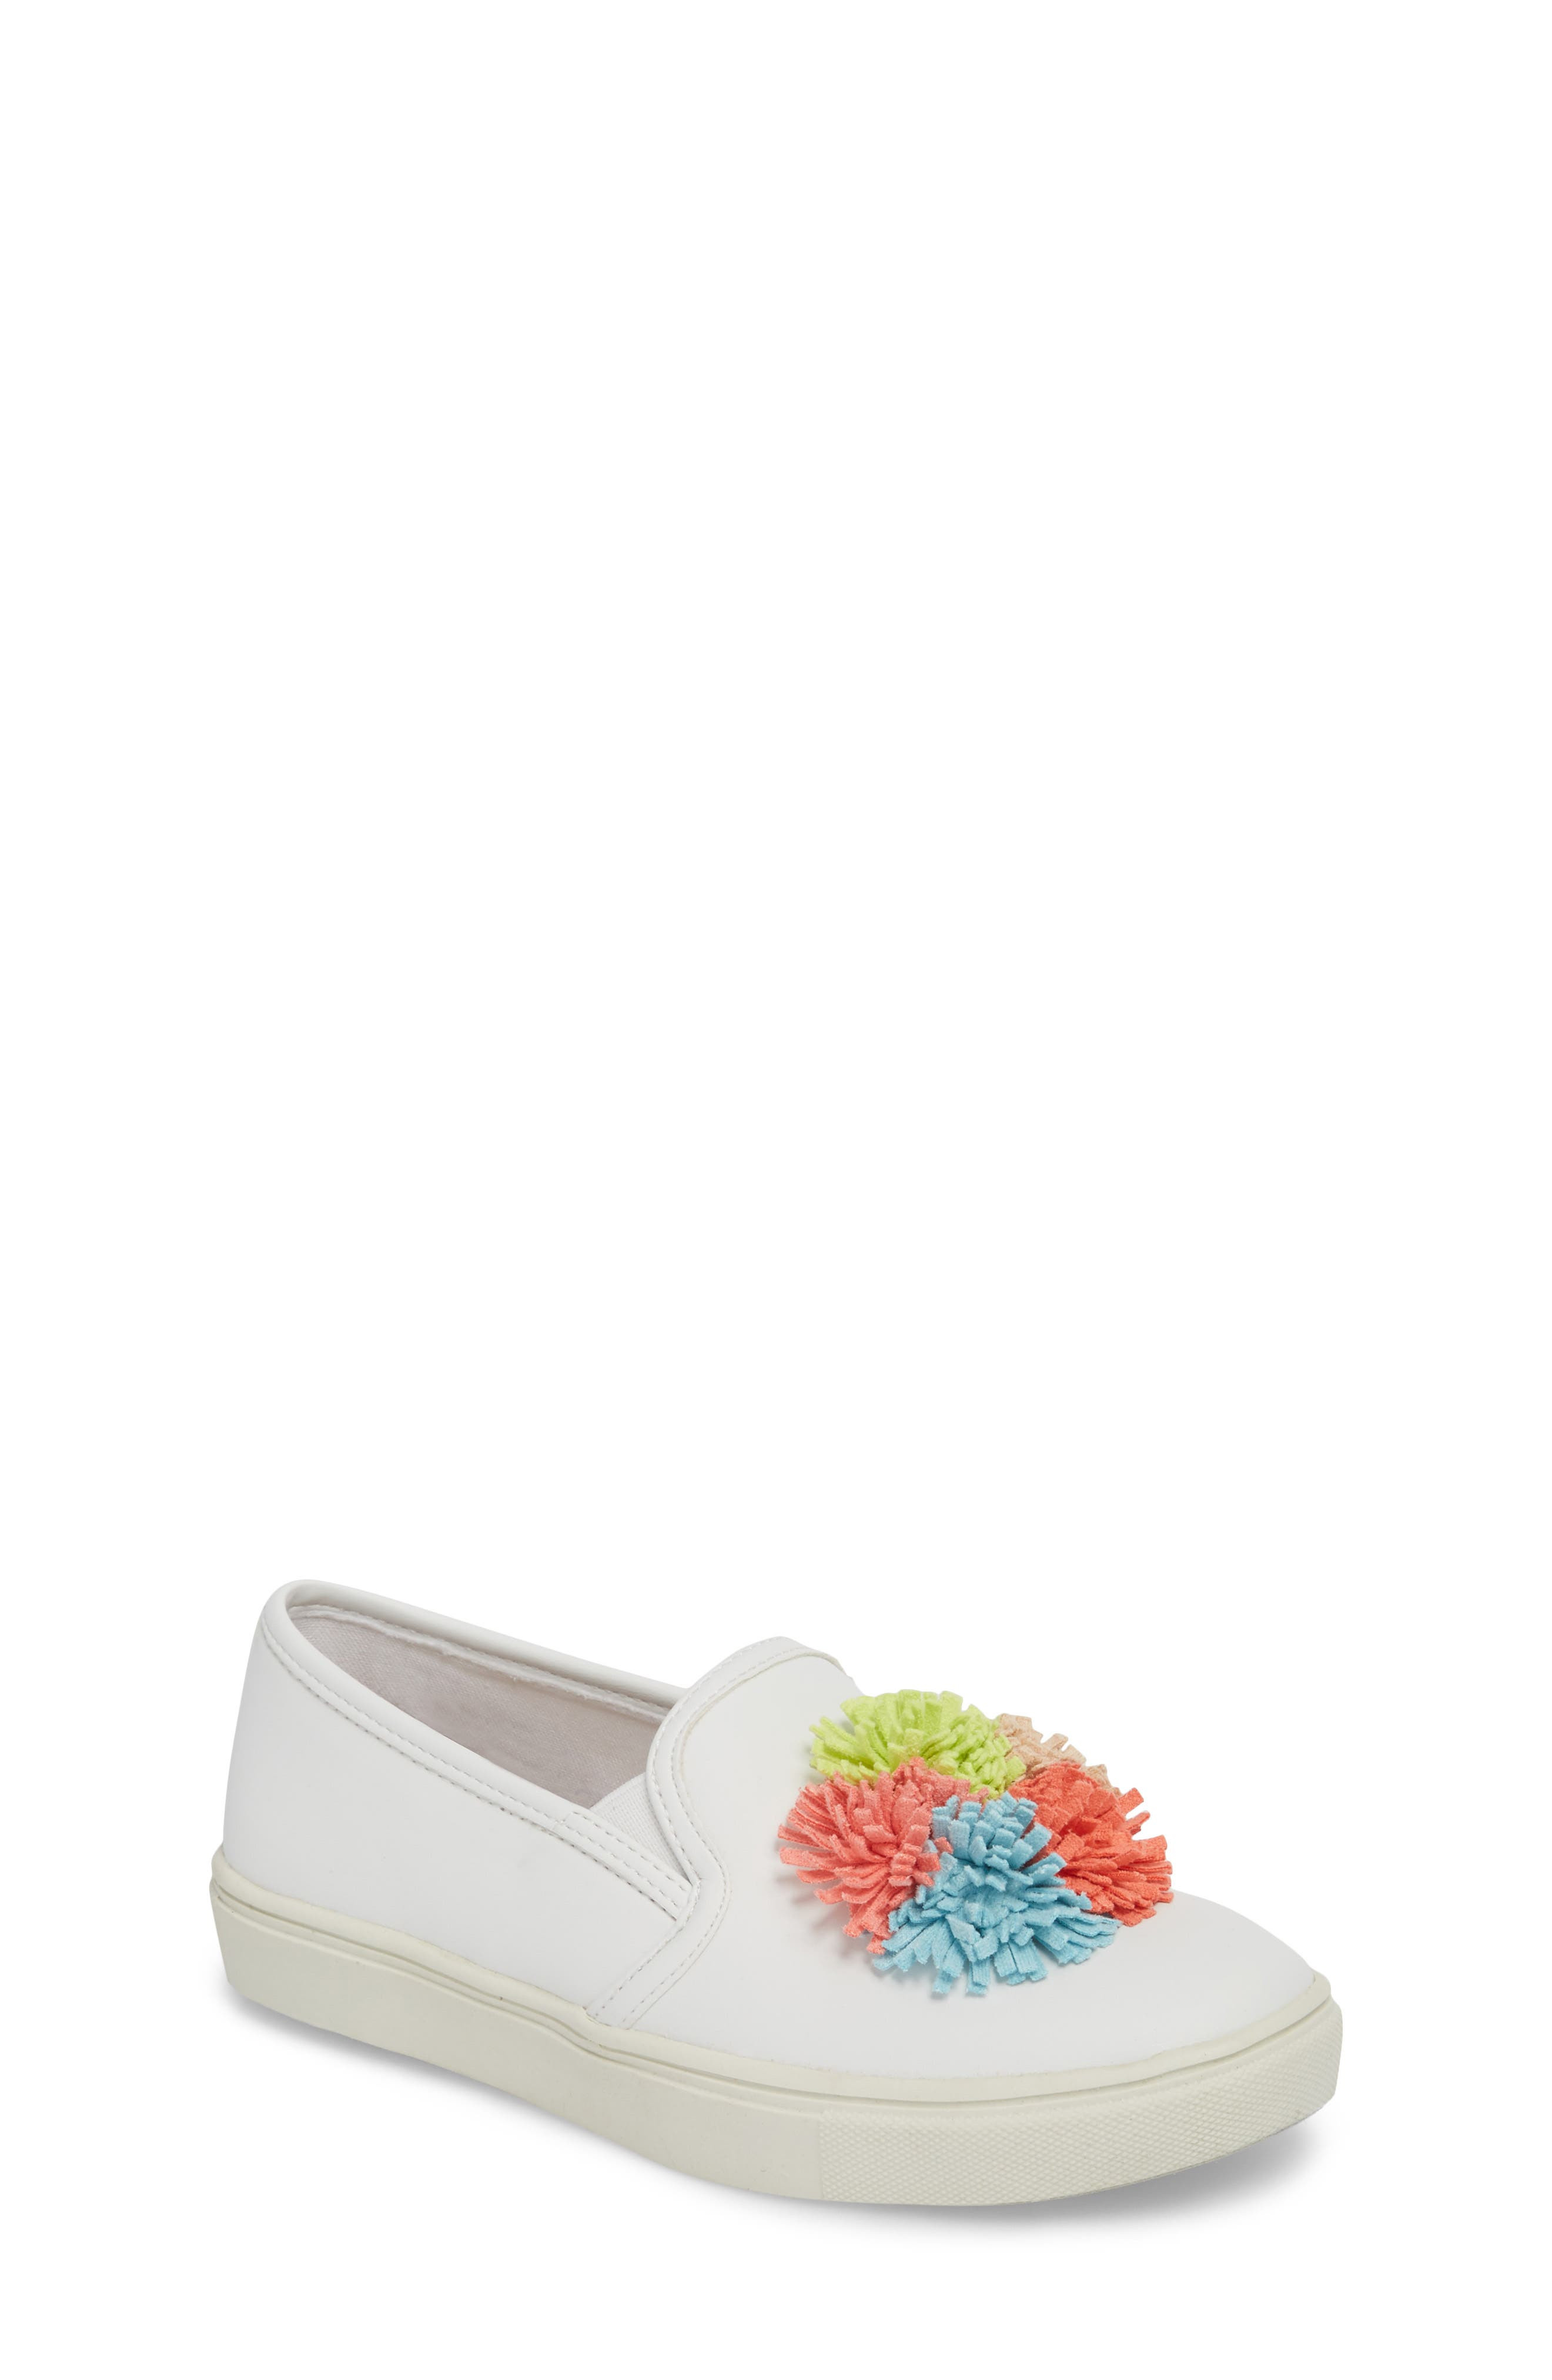 Twiny Pompom Slip-On Sneaker,                             Main thumbnail 1, color,                             White Faux Leather